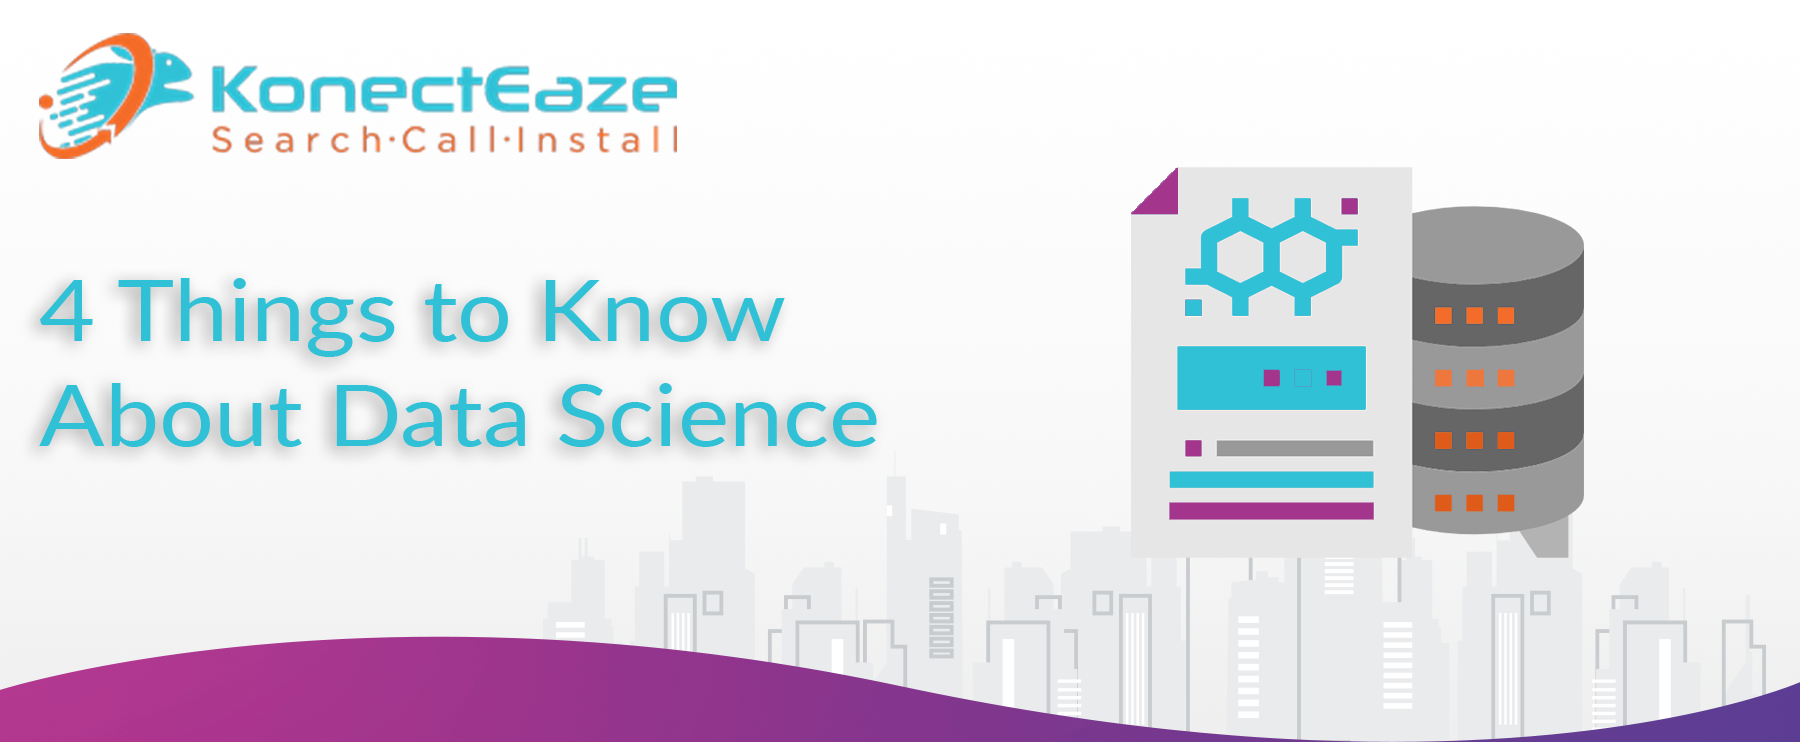 4 Things to Know About Data Science